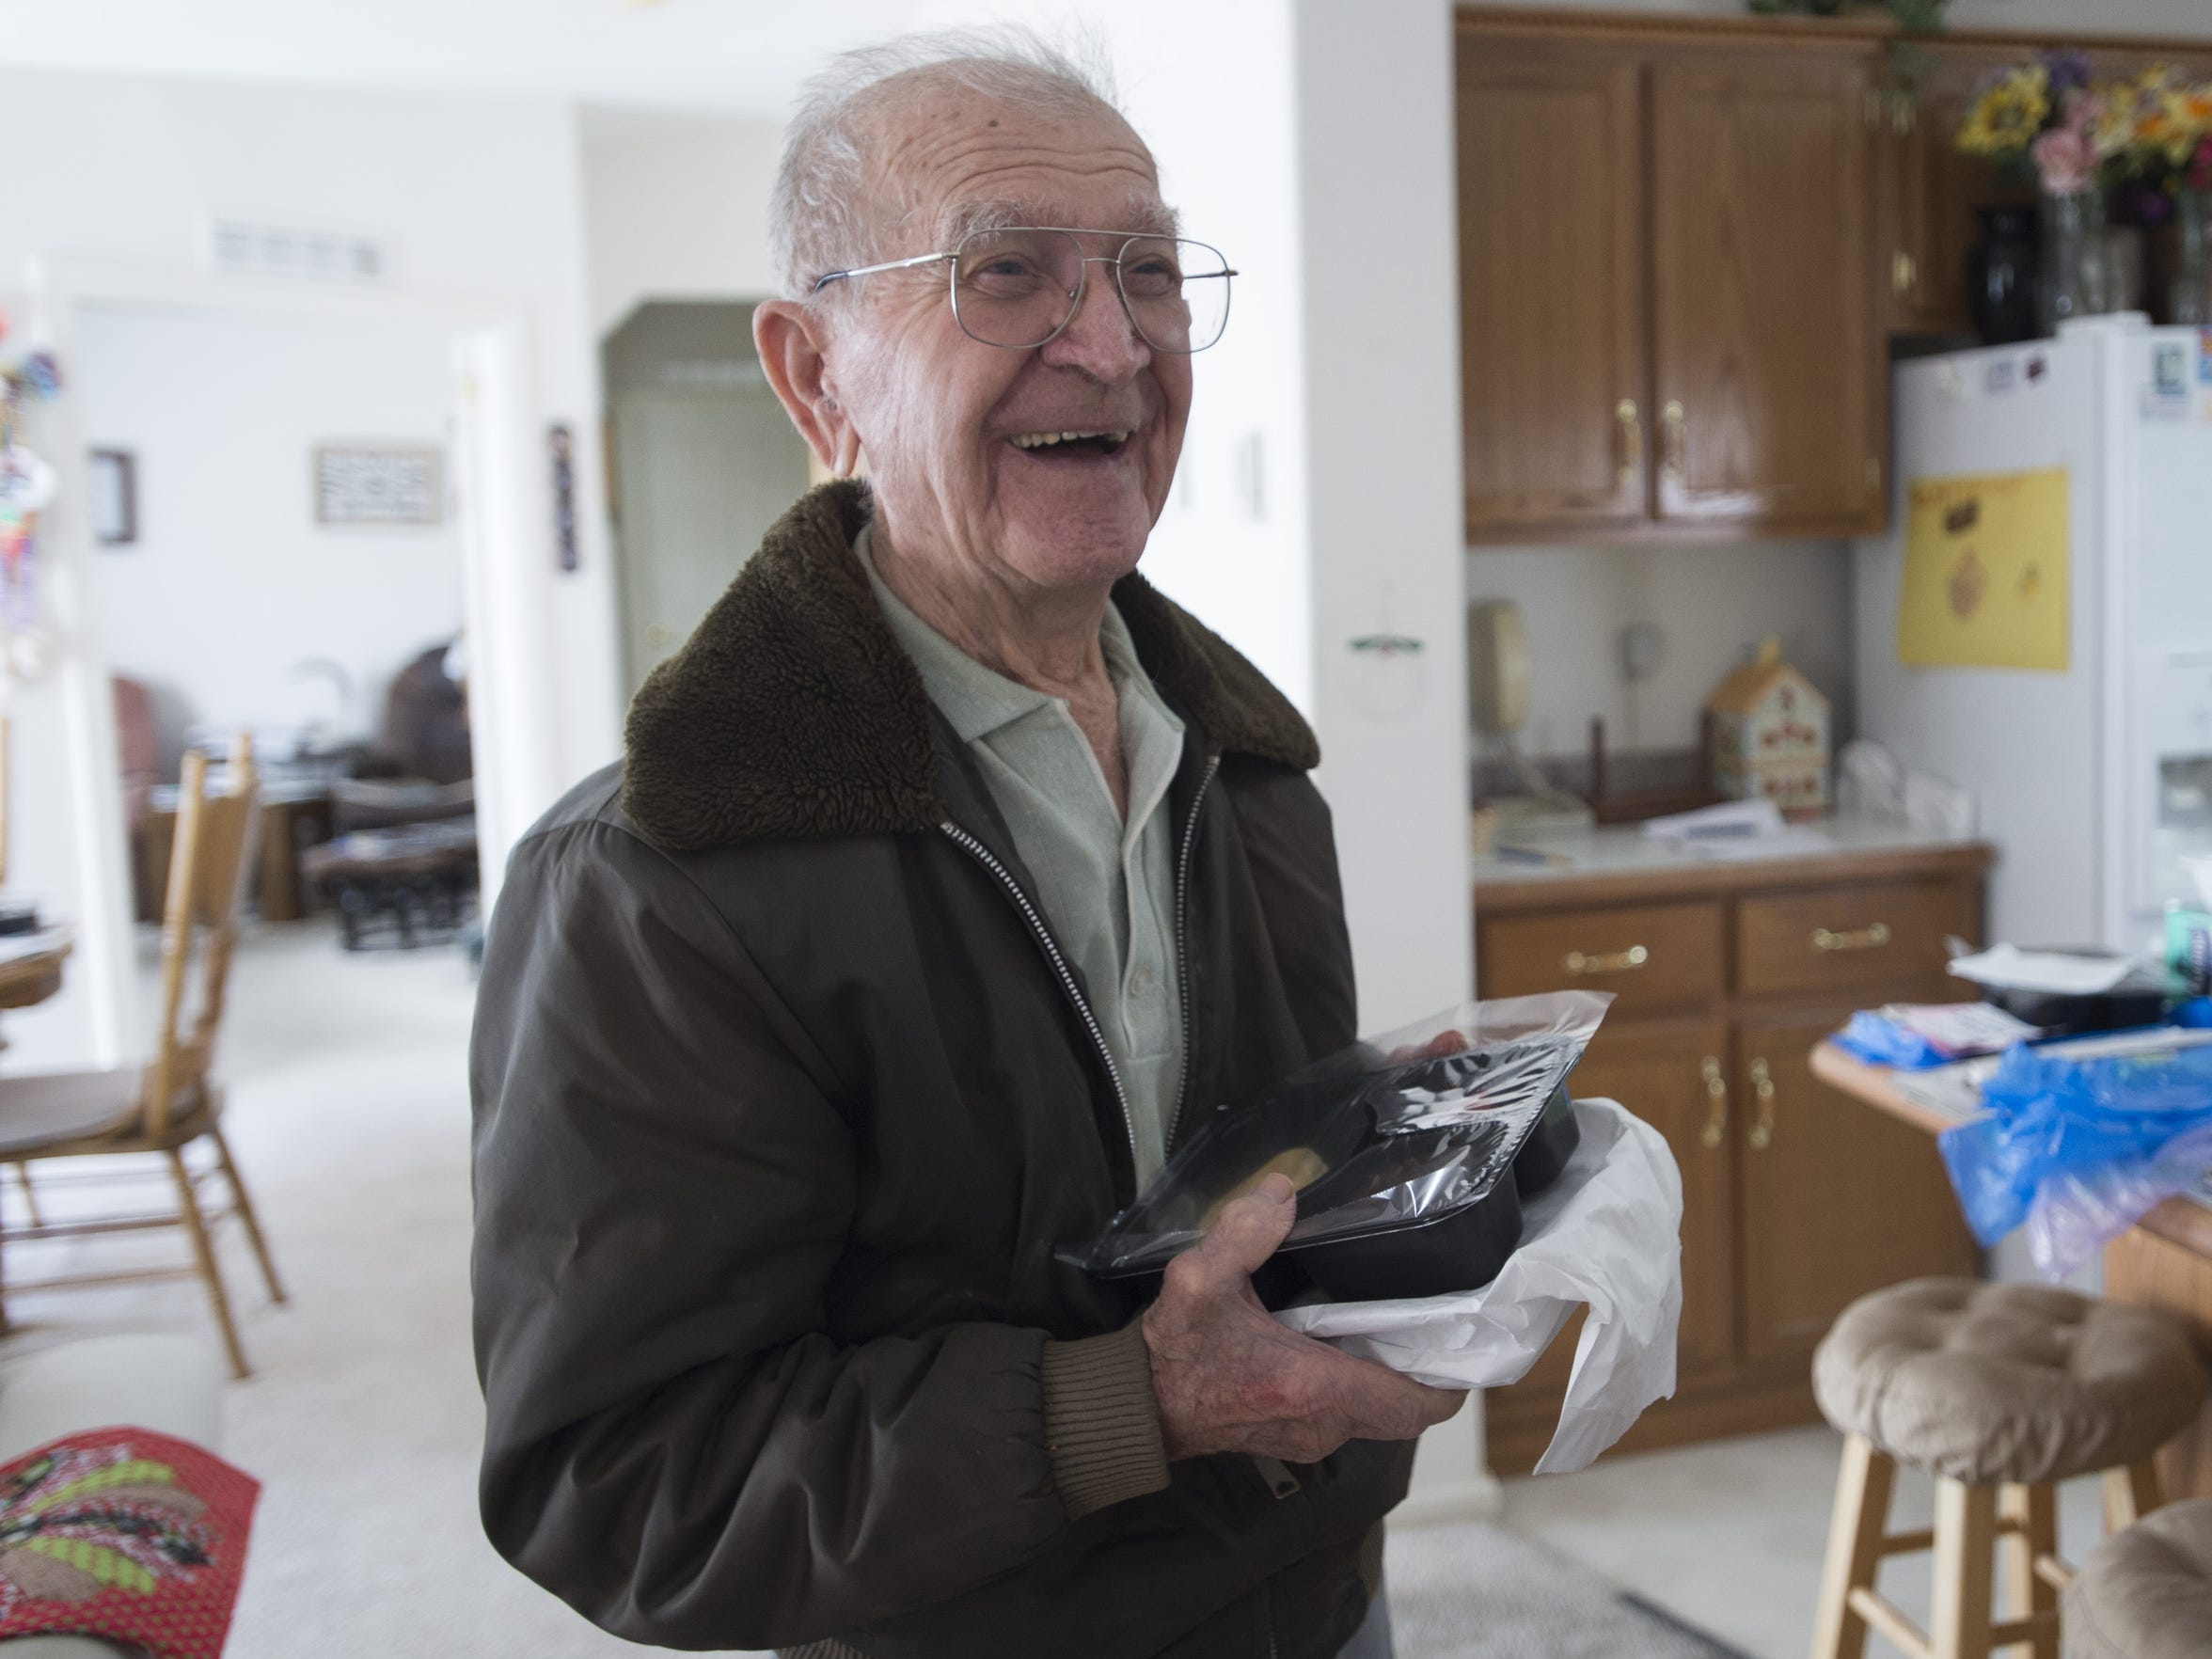 John Mihalek, 97, laughs during a meal delivery from Meals on Wheels at his home in east Fort Collins on Friday, March 17, 2017.